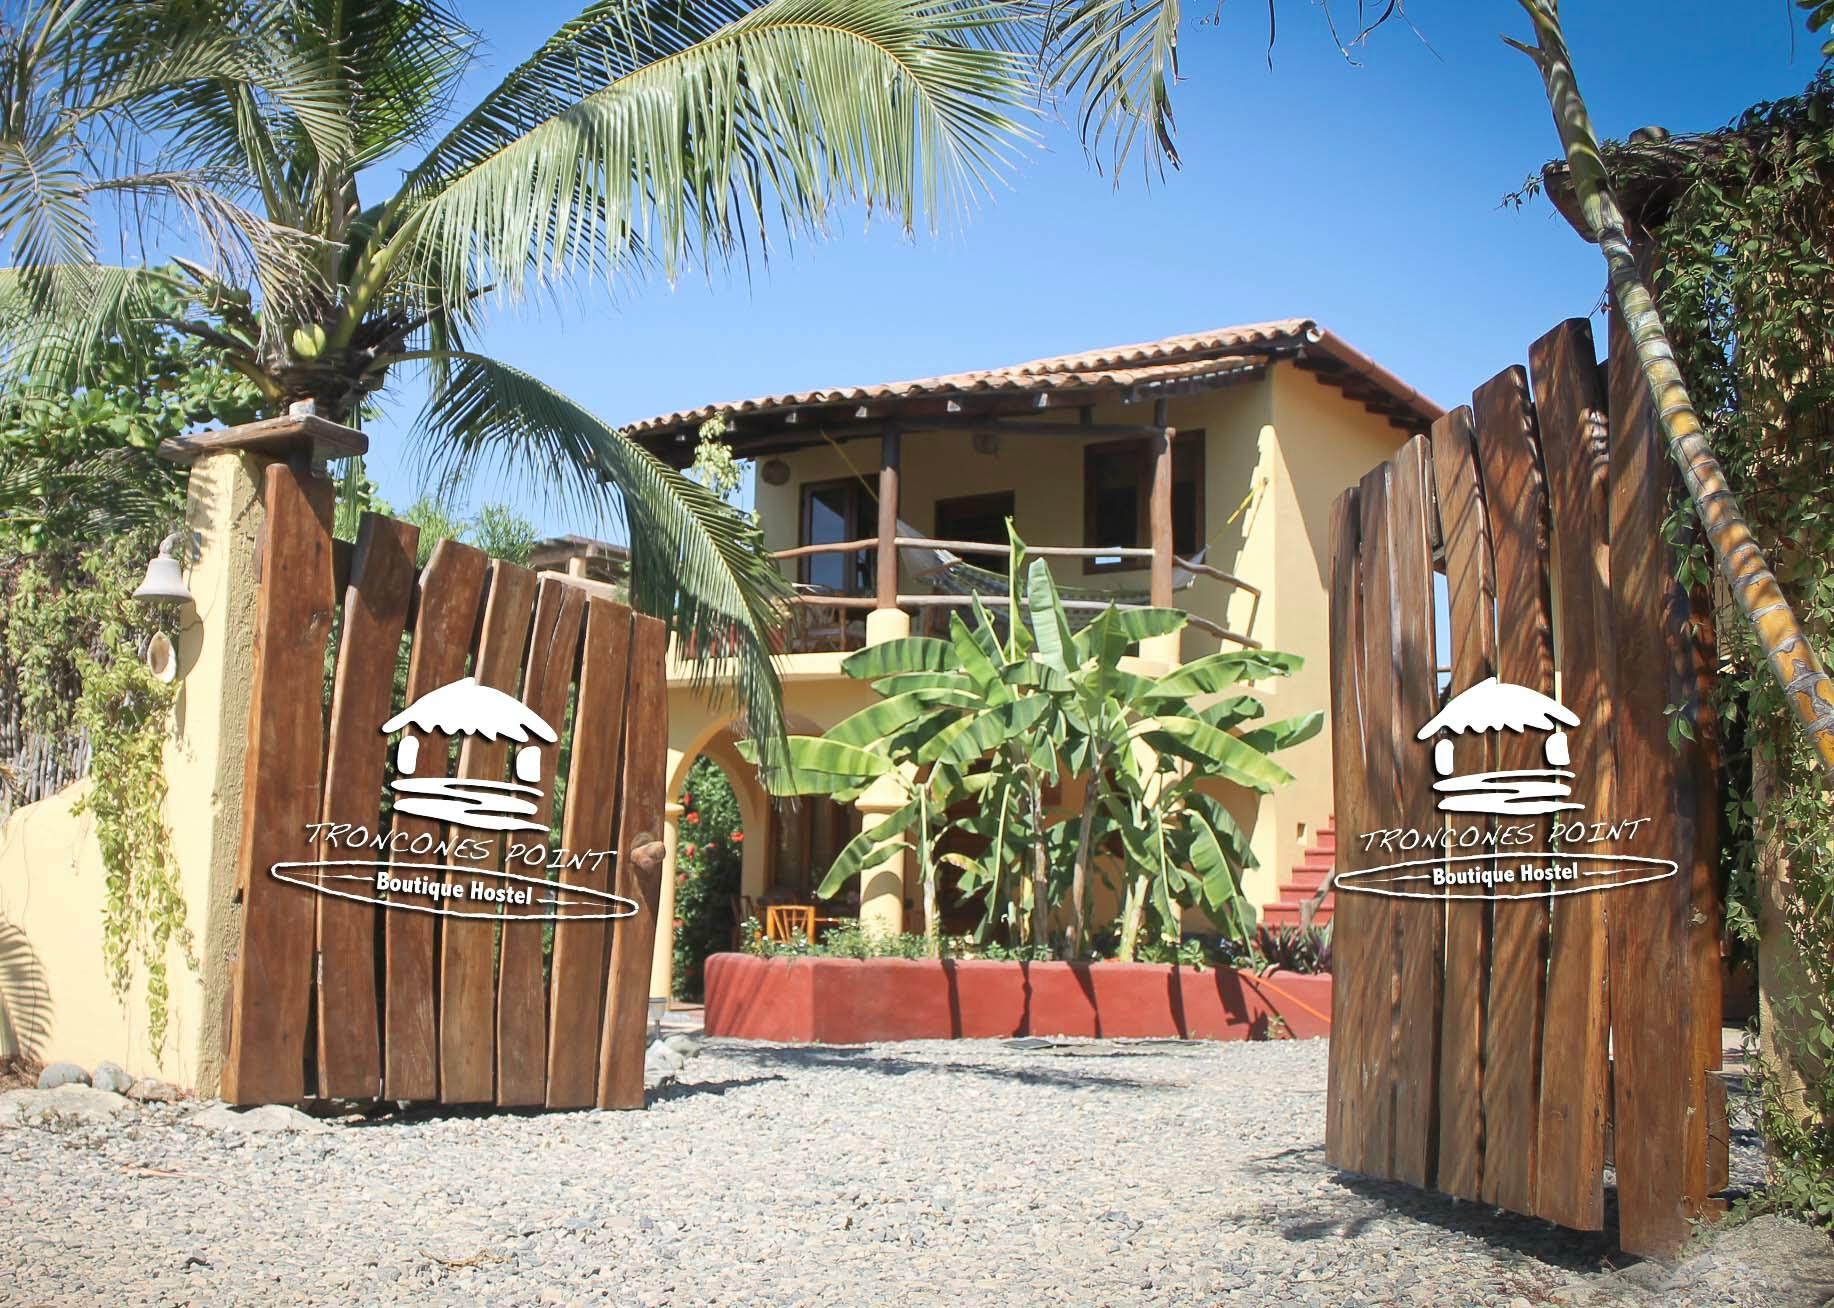 Troncones Point Hostel